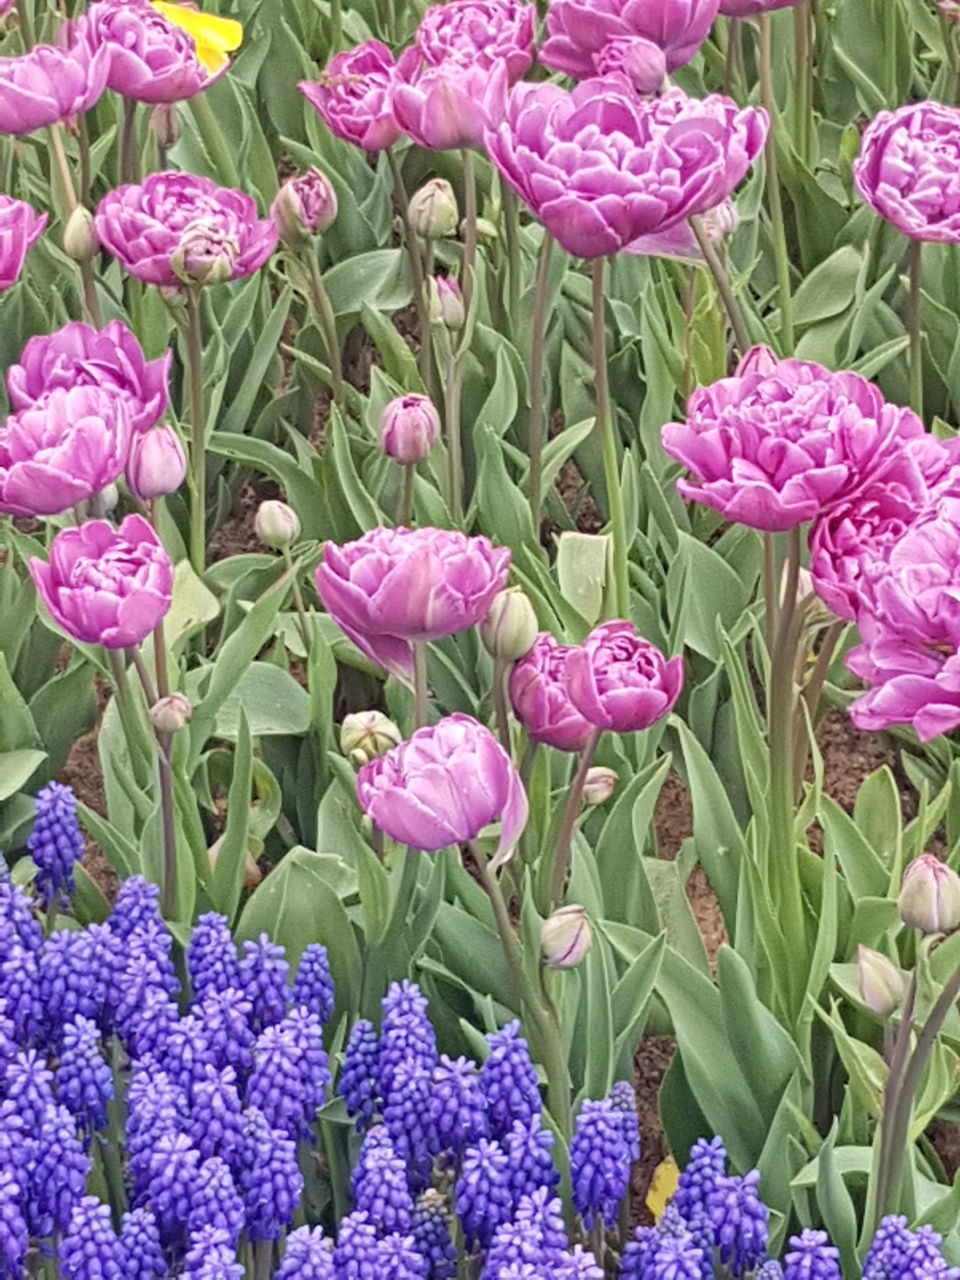 flowering plant, flower, beauty in nature, plant, vulnerability, growth, fragility, freshness, petal, close-up, green color, nature, flower head, plant part, no people, leaf, inflorescence, pink color, purple, full frame, outdoors, flowerbed, flower arrangement